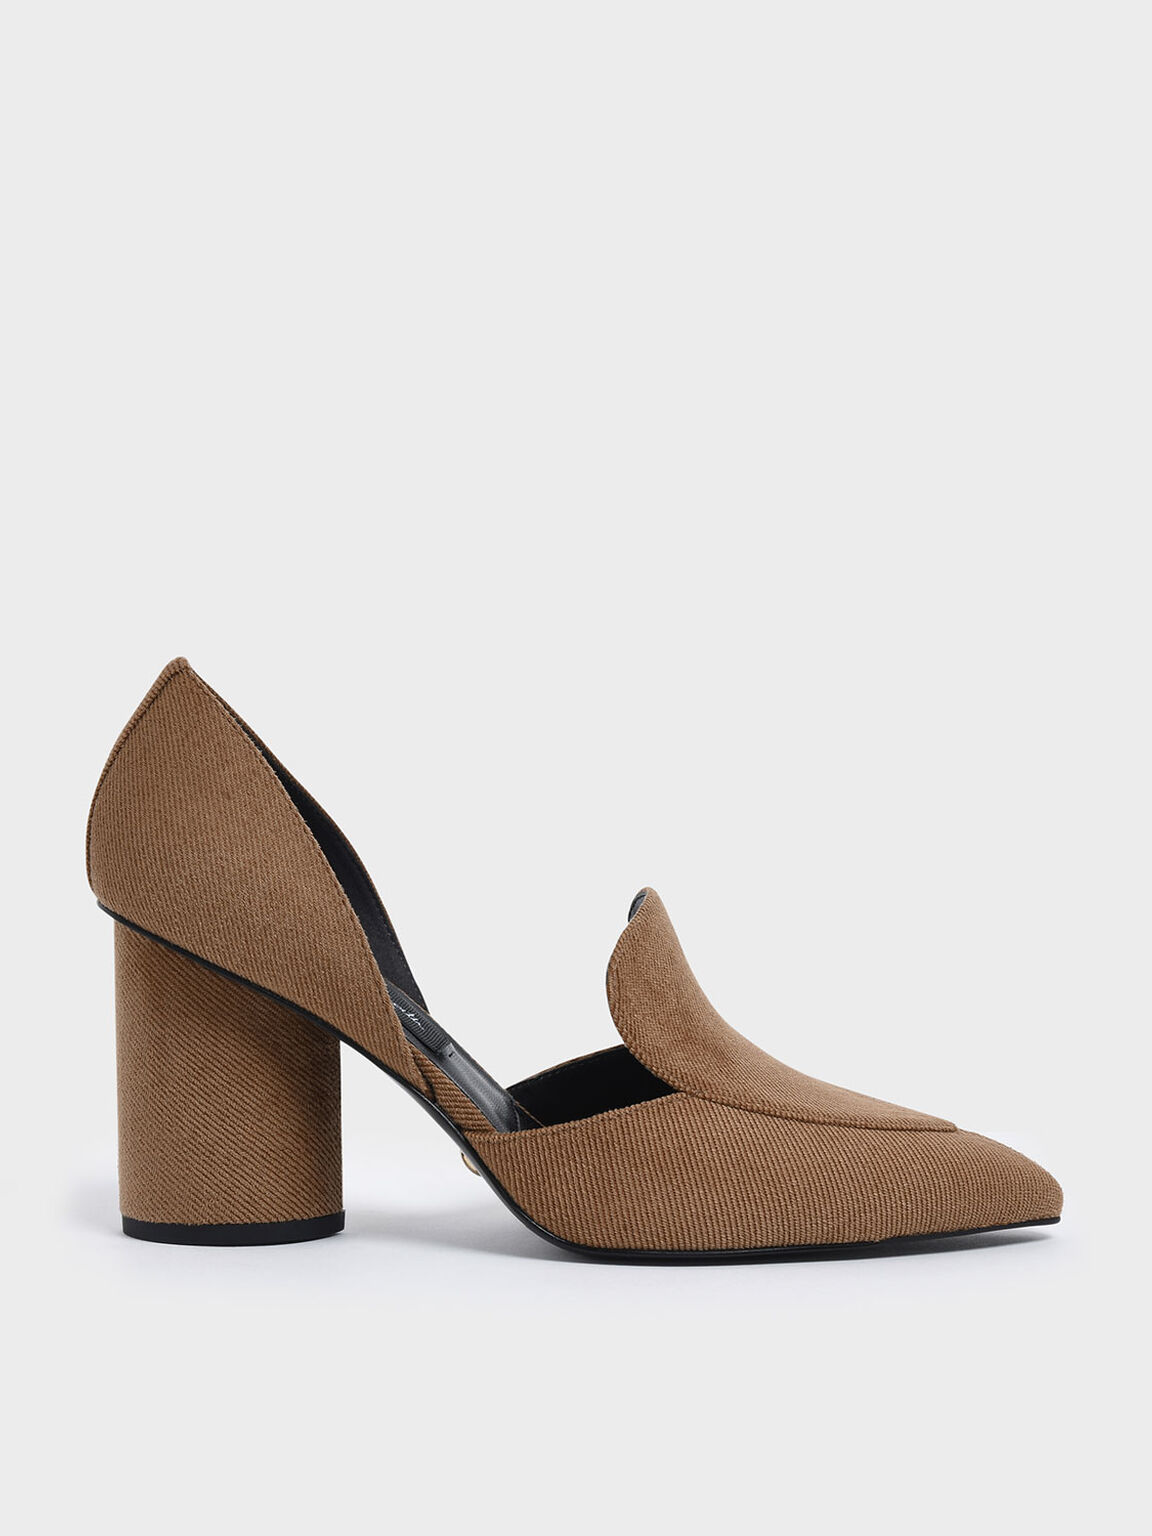 Sculptural Heel Corduroy Pumps, Camel, hi-res